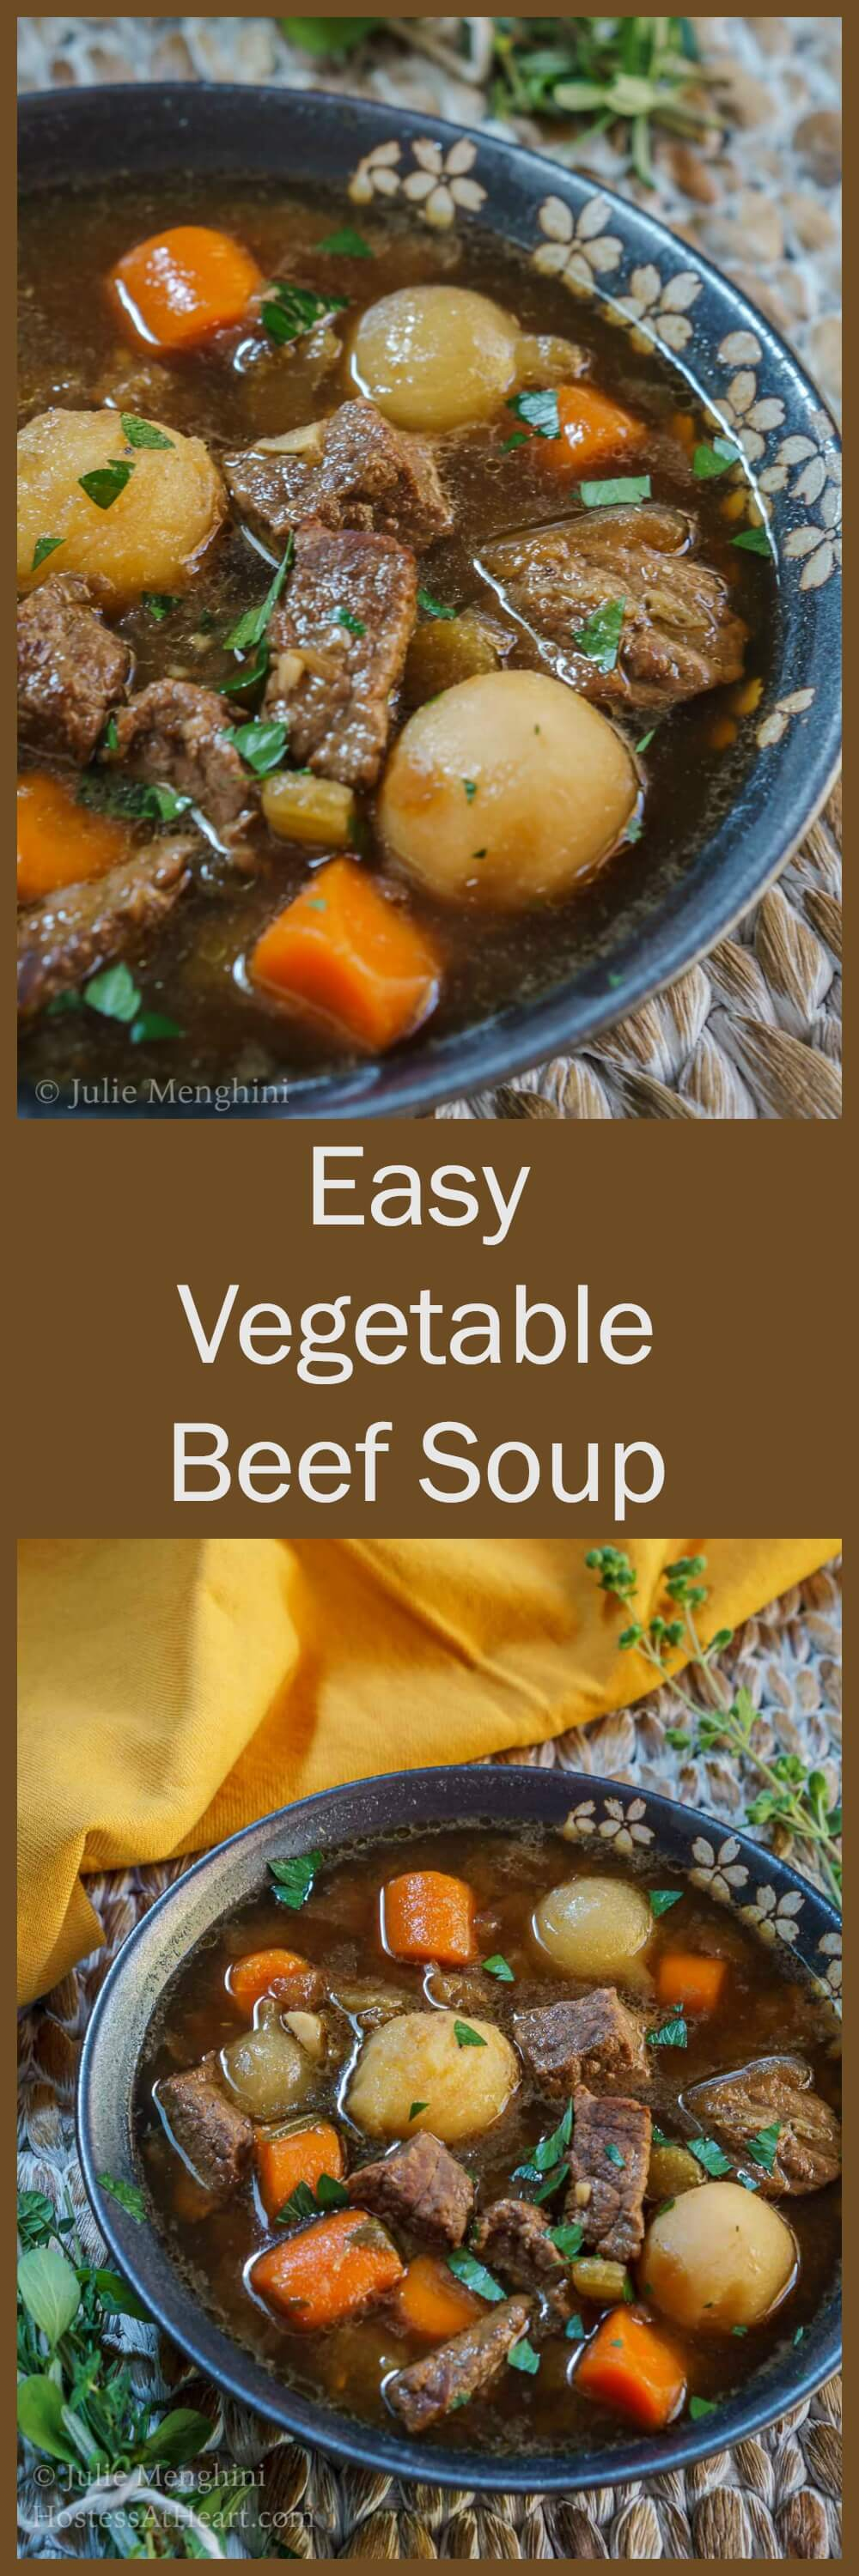 Easy Vegetable Beef Soup is nutritious and delicious. It can be put together and on the table in no time at all and is the perfect meal after a long or busy day. | HostessAtHeart.com